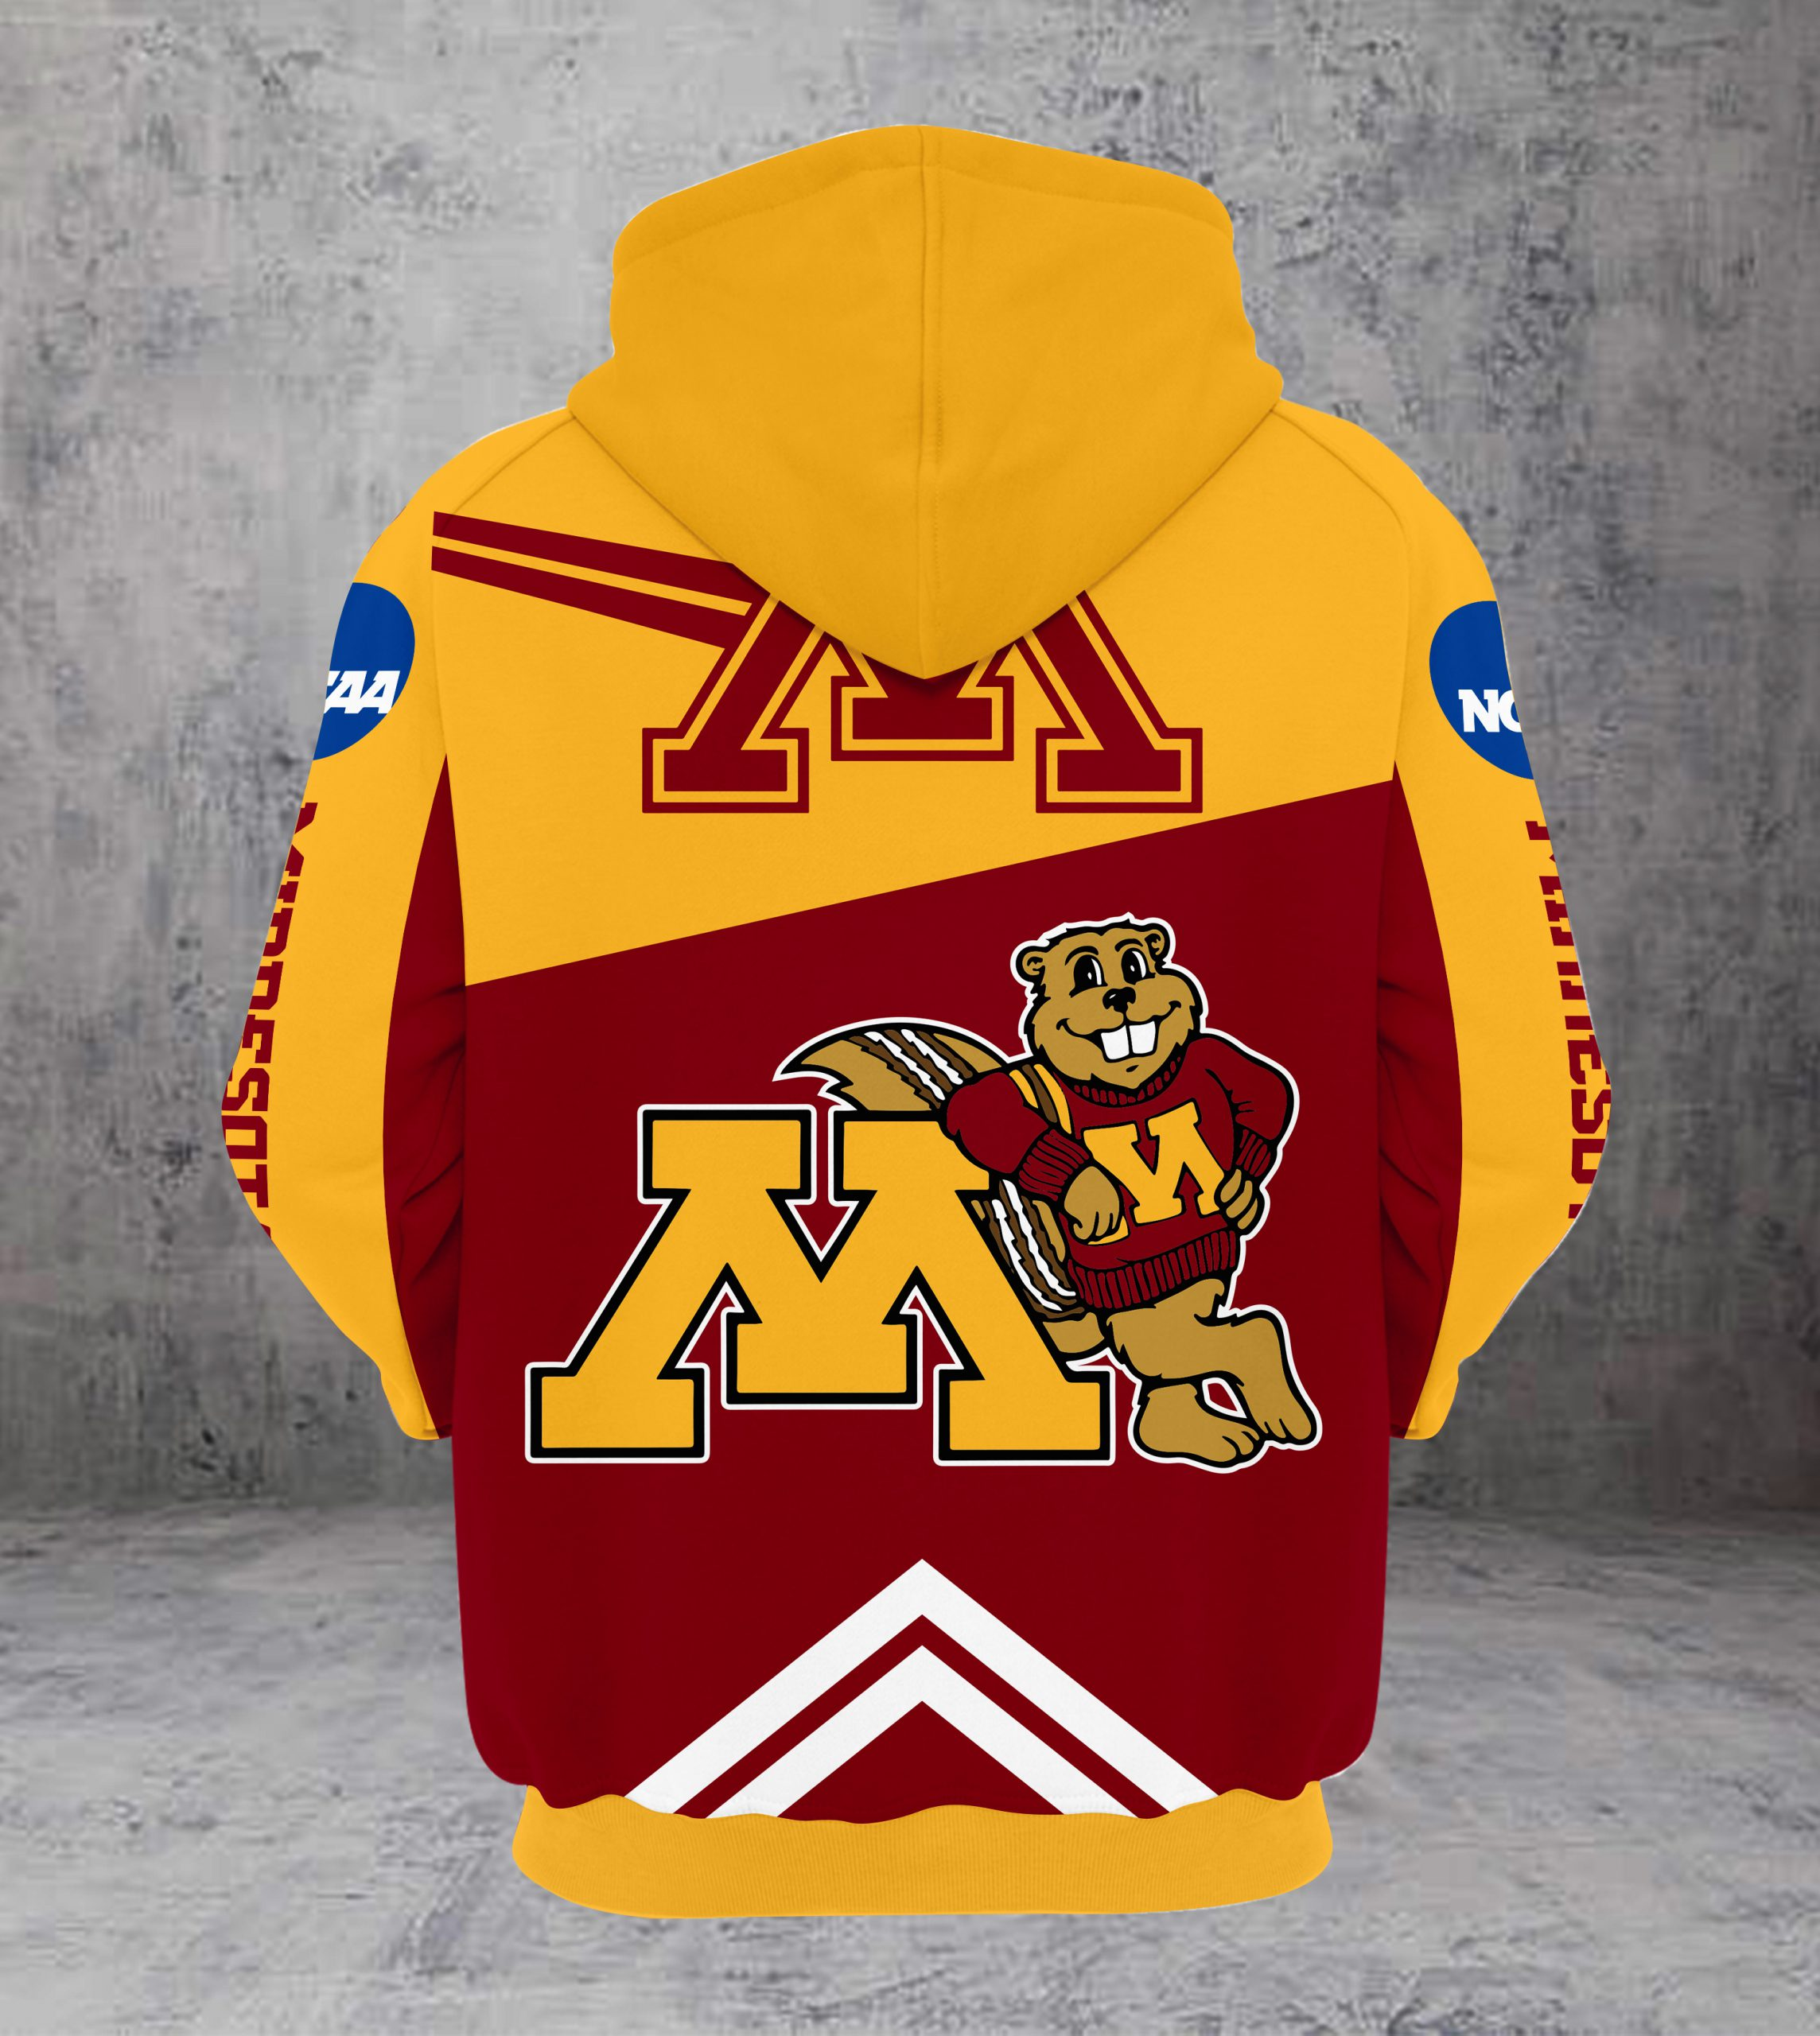 Outback bowl minnesota golden gophers champions all over print hoodie - back